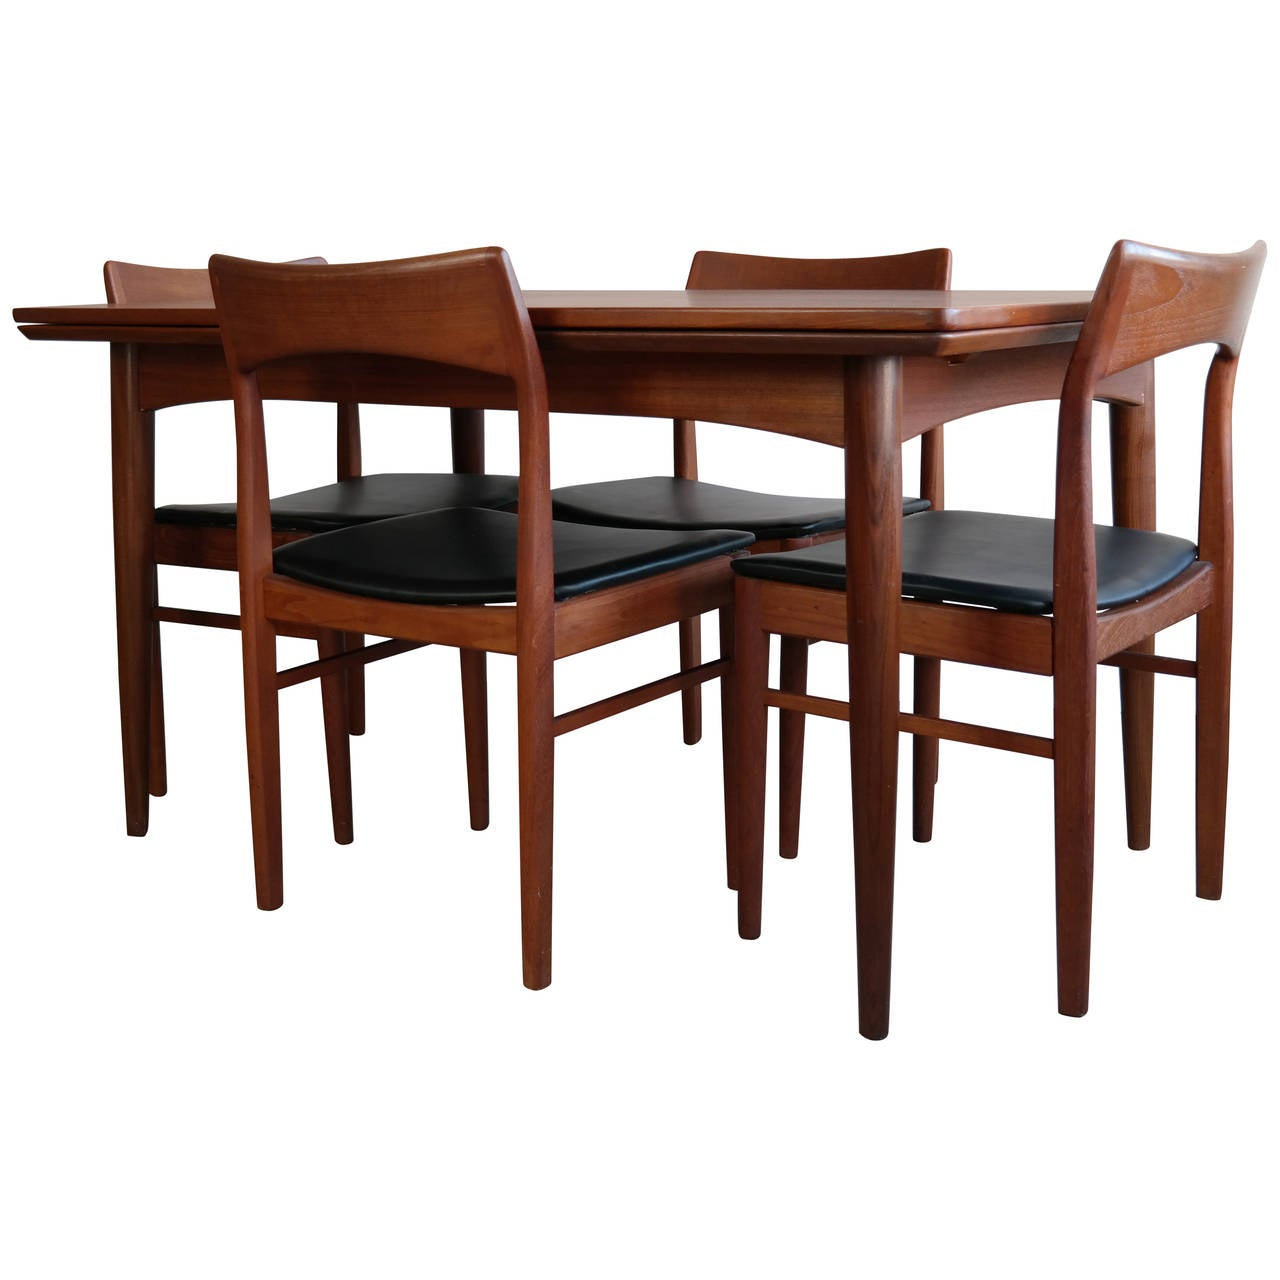 Danish modern dining set in teak at 1stdibs - Contemporary dining room sets furniture ...